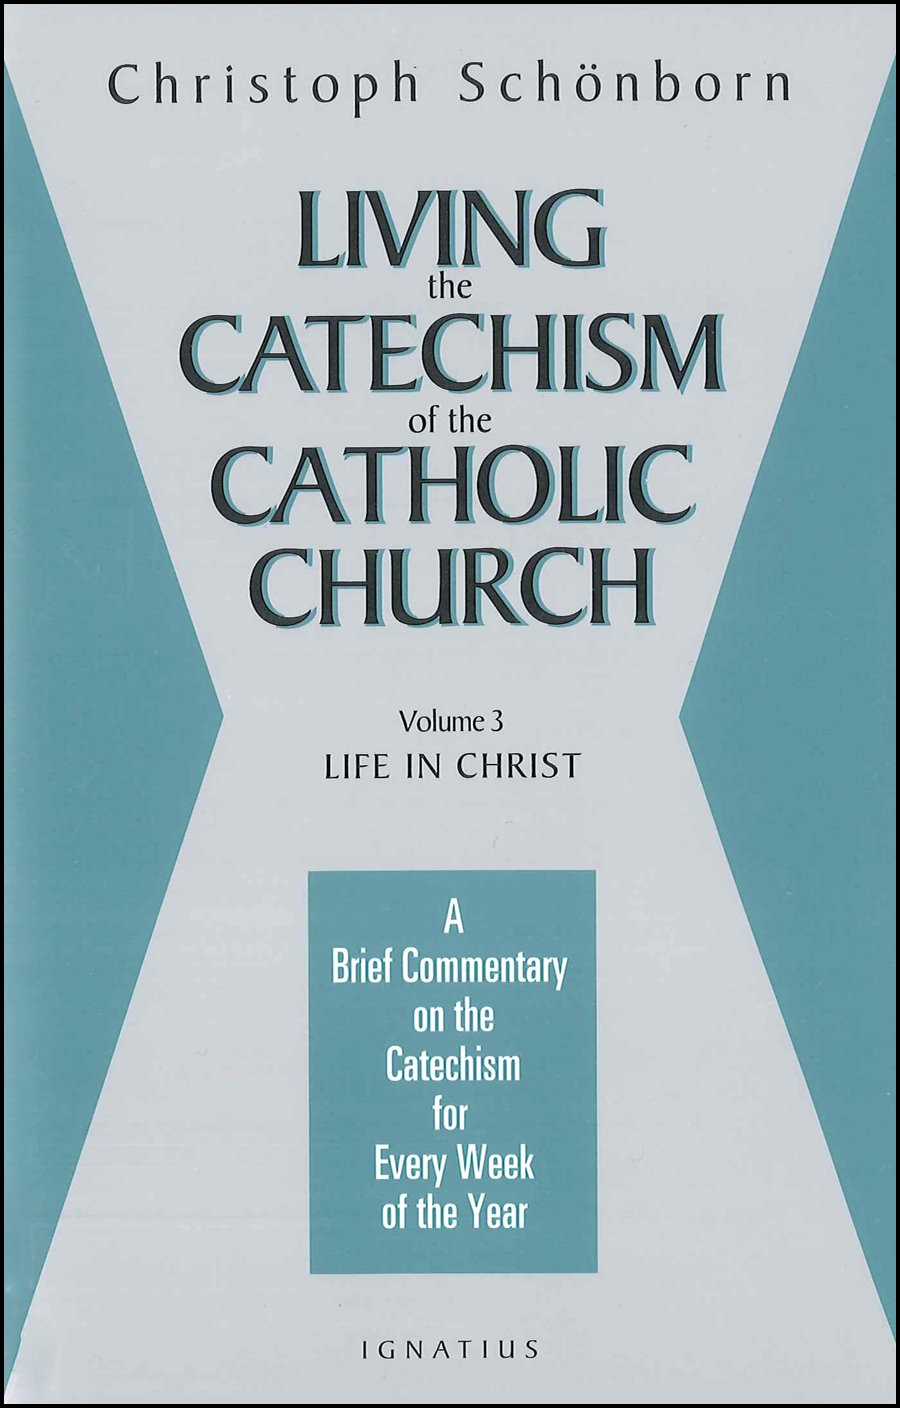 Living the Catechism of the Catholic Church, Vol. III: Life in Christ